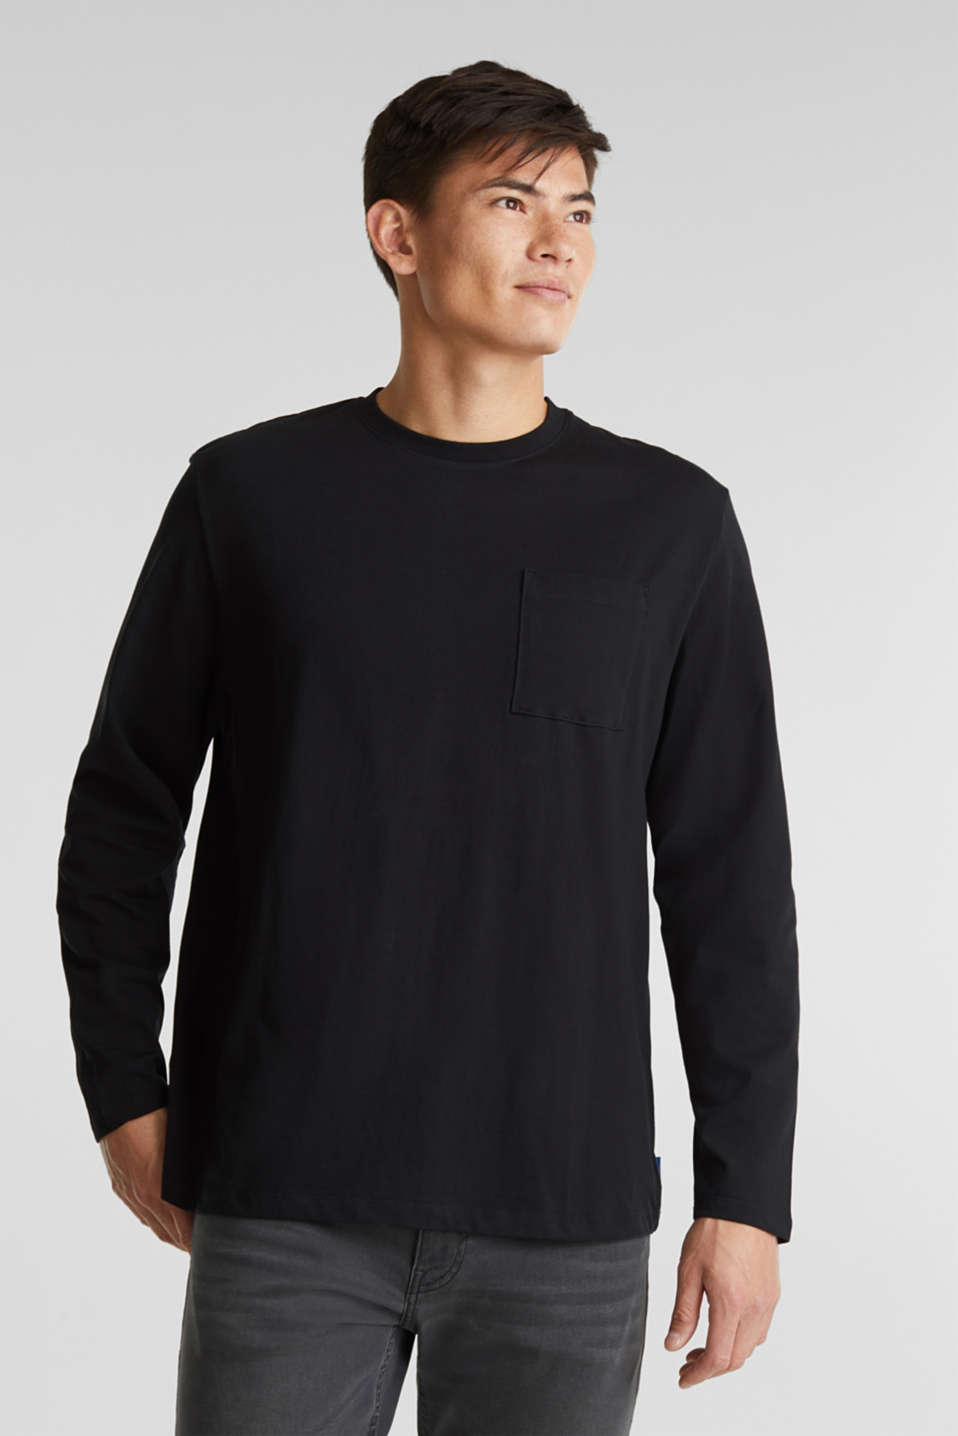 edc - Long sleeve top made of 100% organic cotton